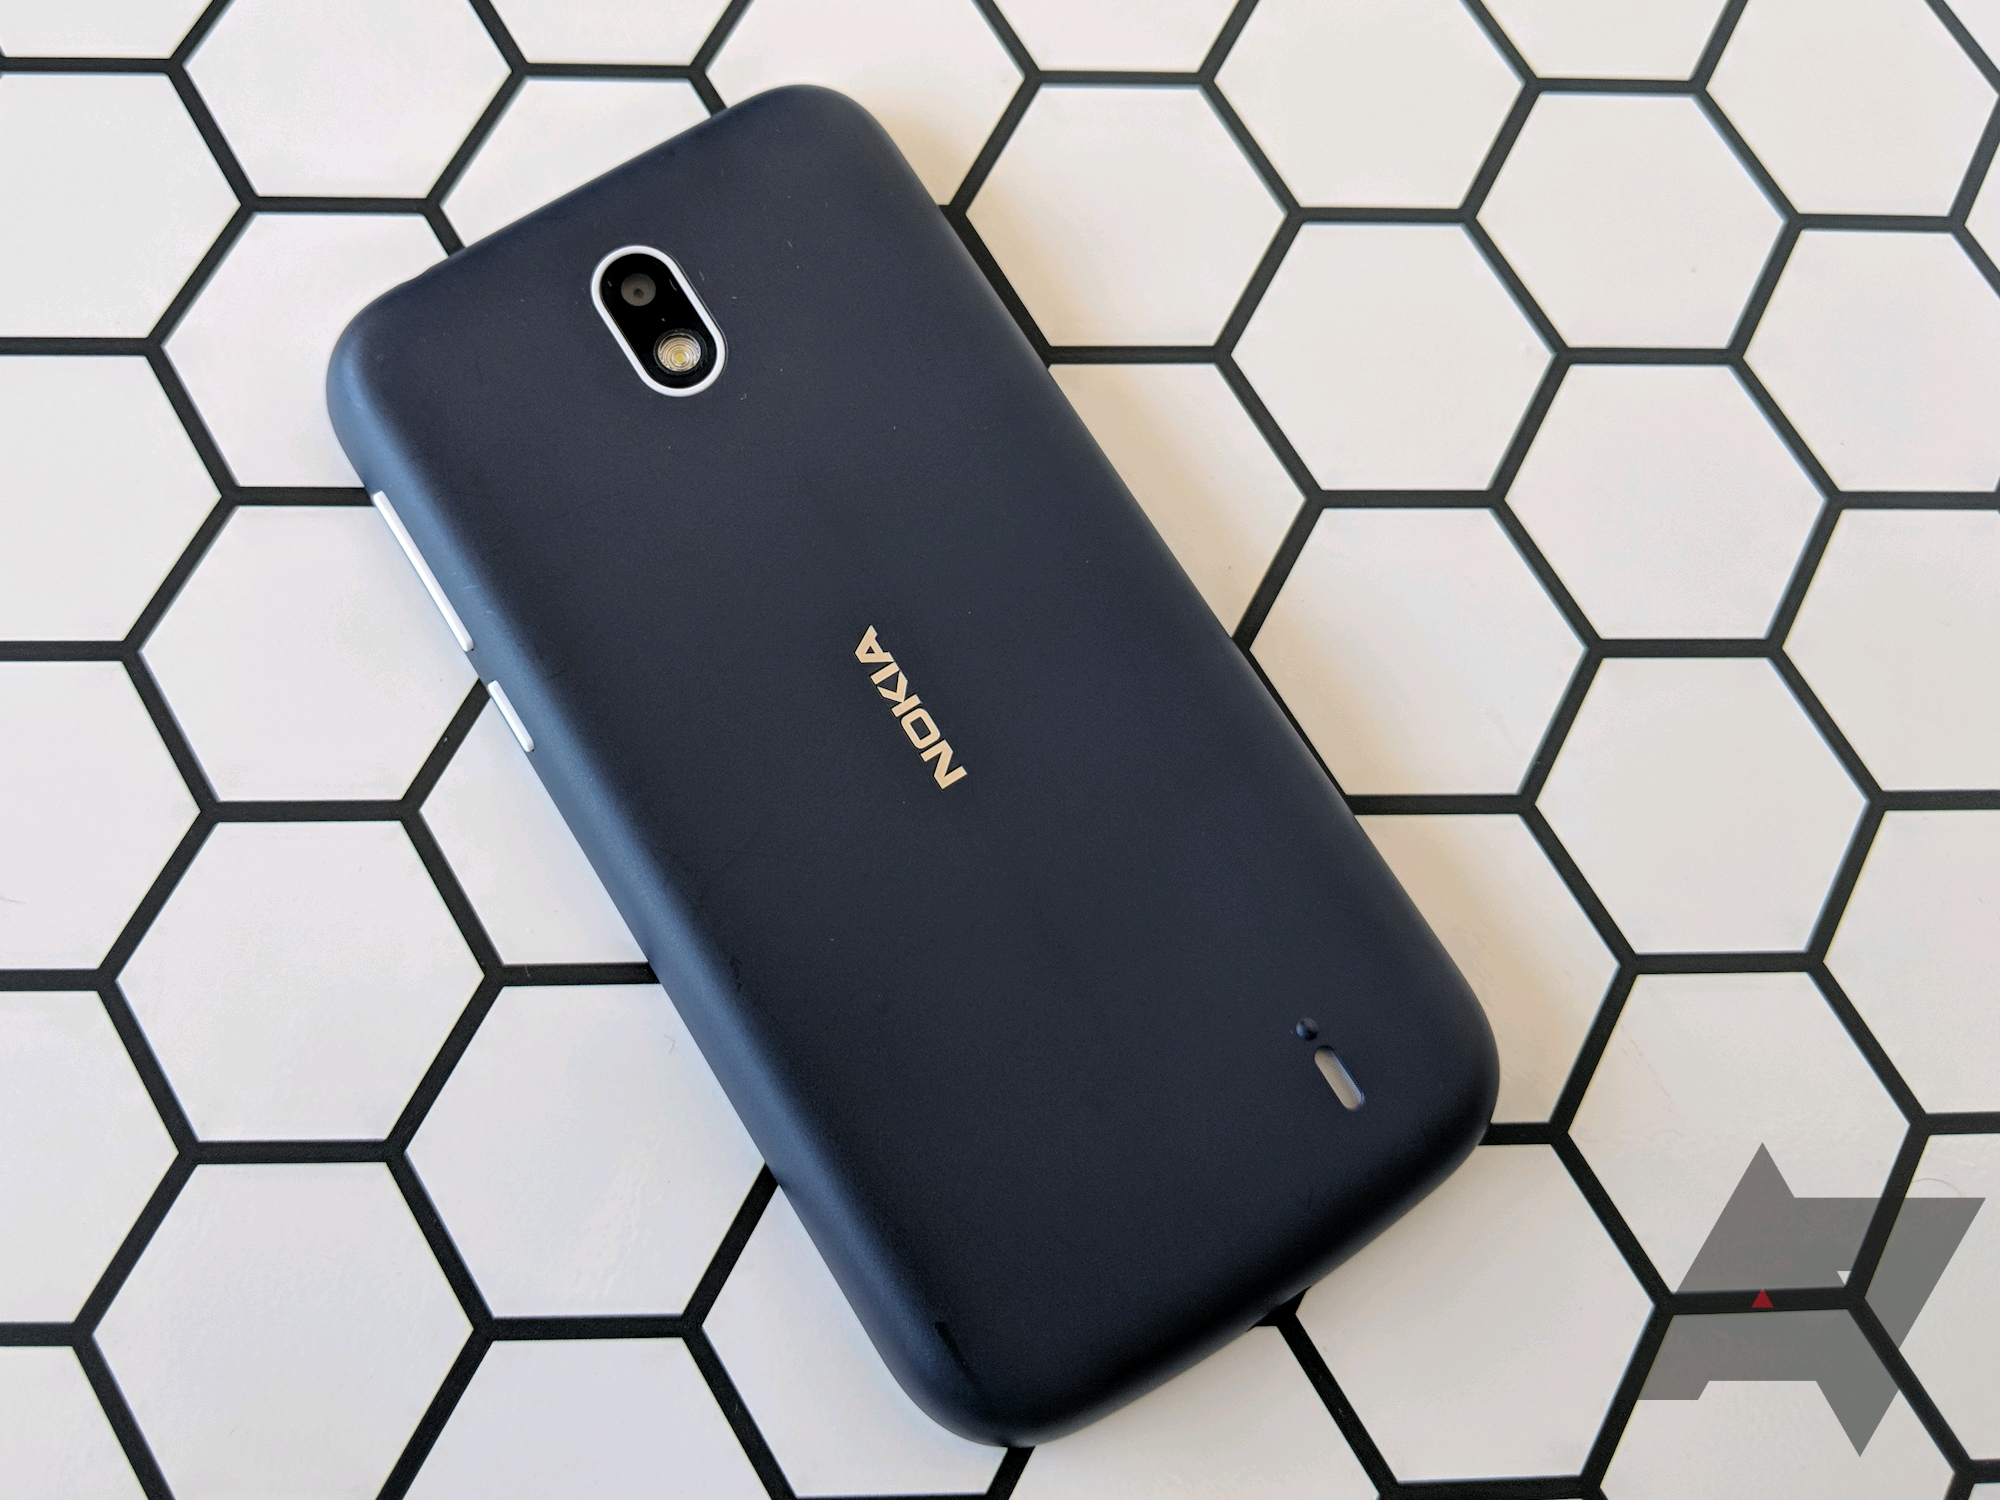 HMD Global rolls out Android 10 Go Edition to the Nokia 1